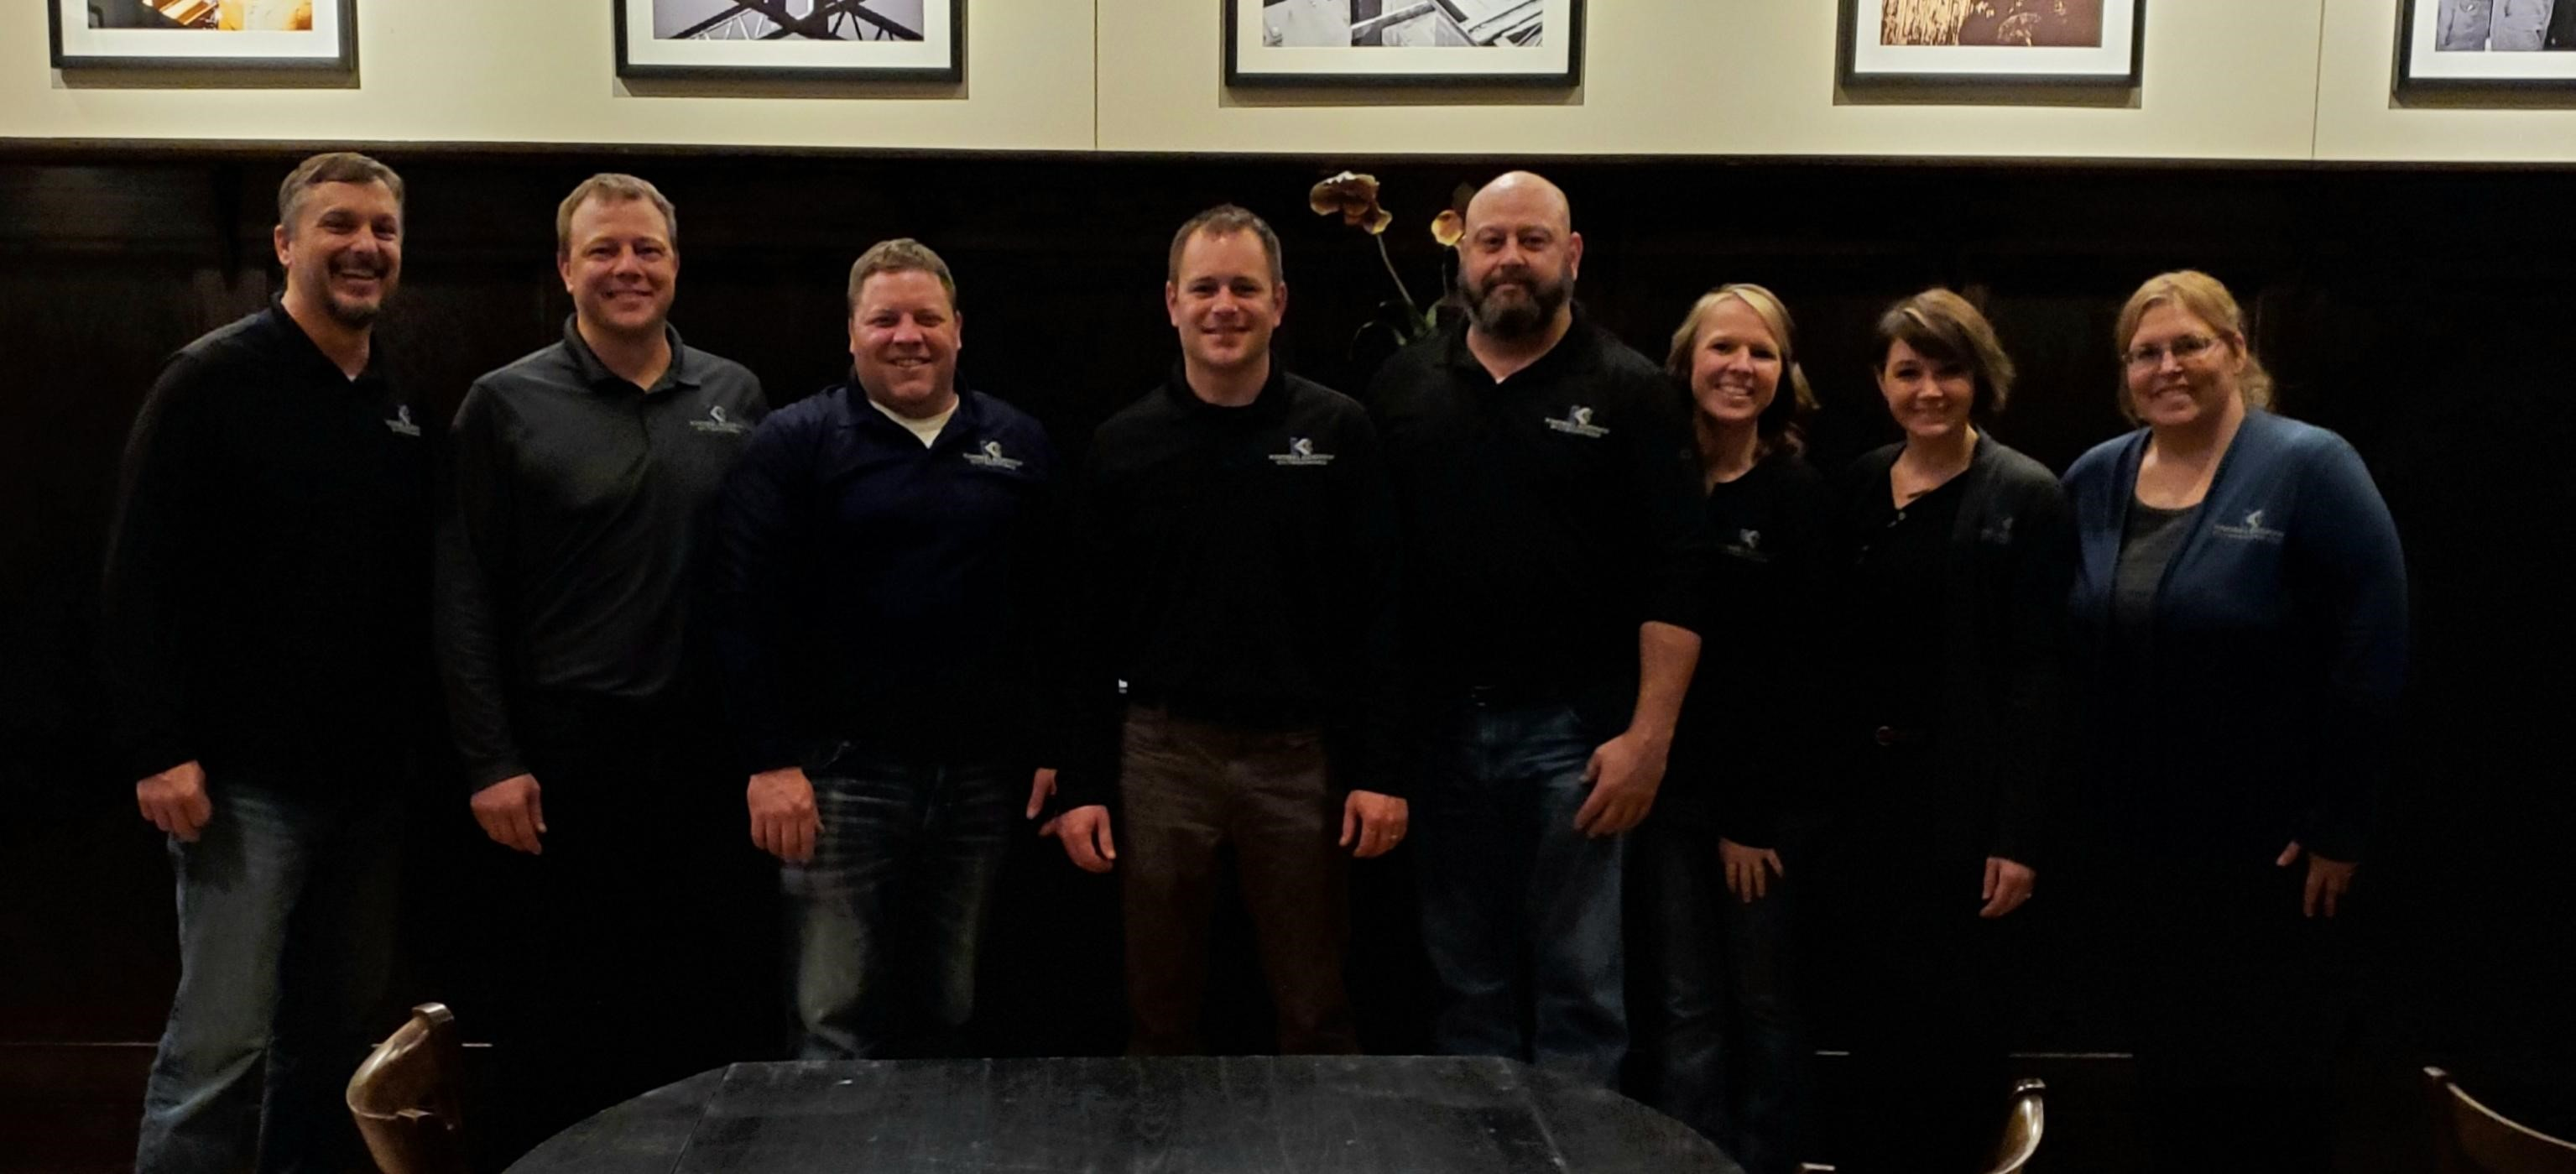 The KE team surprised Karl at the yearly ABC MN/ND Chapter meeting